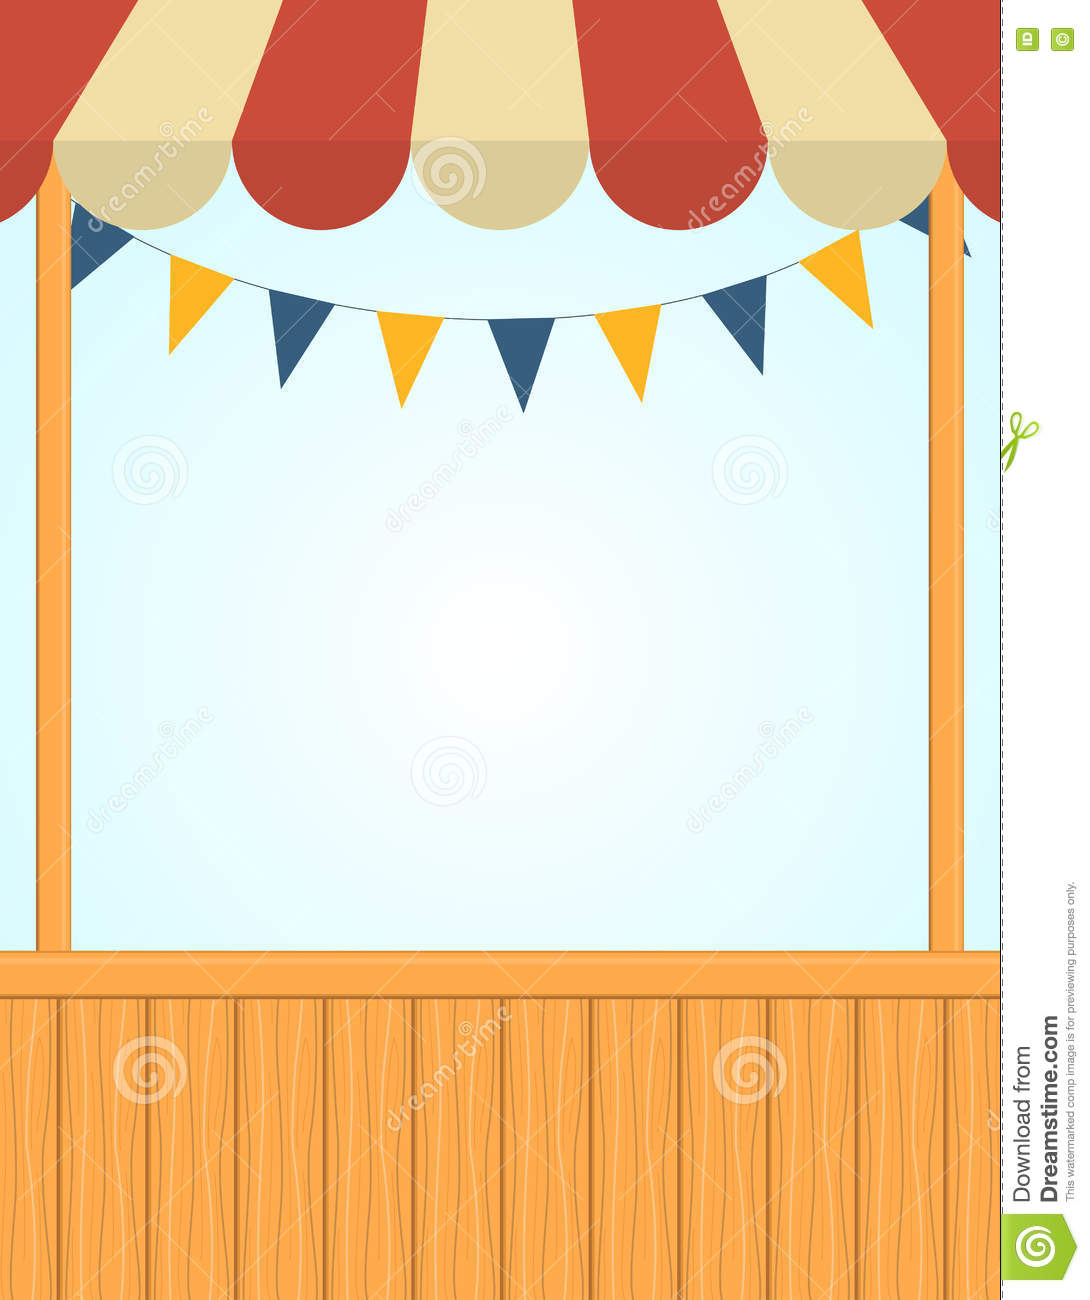 Booth clipart.